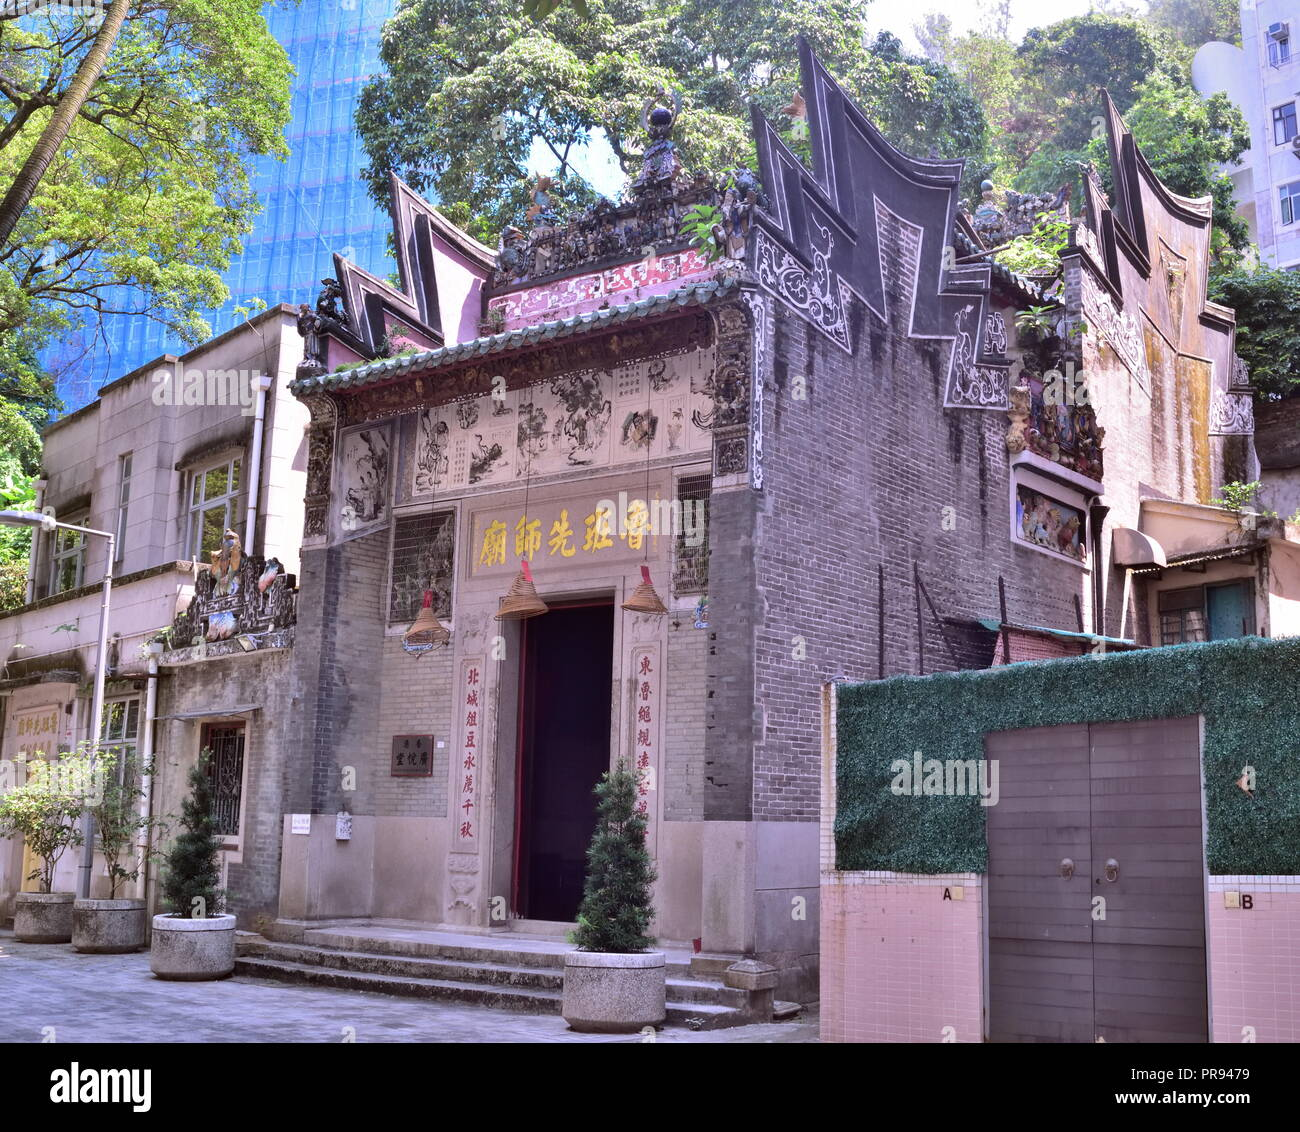 Temple of Master Lo Pan, Grade 1 Historical Building  in Hong Kong. - Stock Image